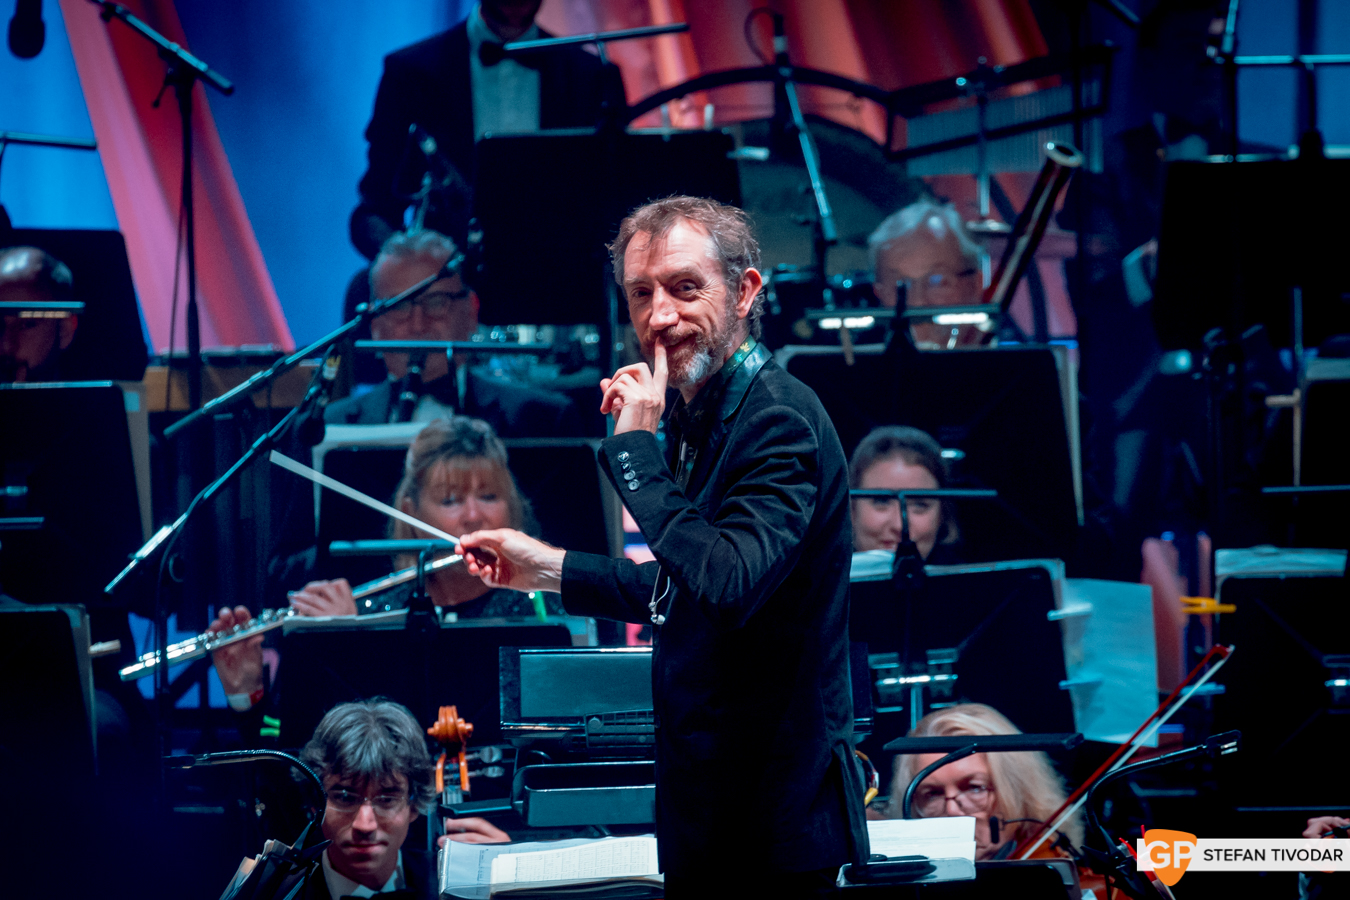 RTE Concert Orchestra Culture Night 2019 at National Museum of Ireland Tivodar 4